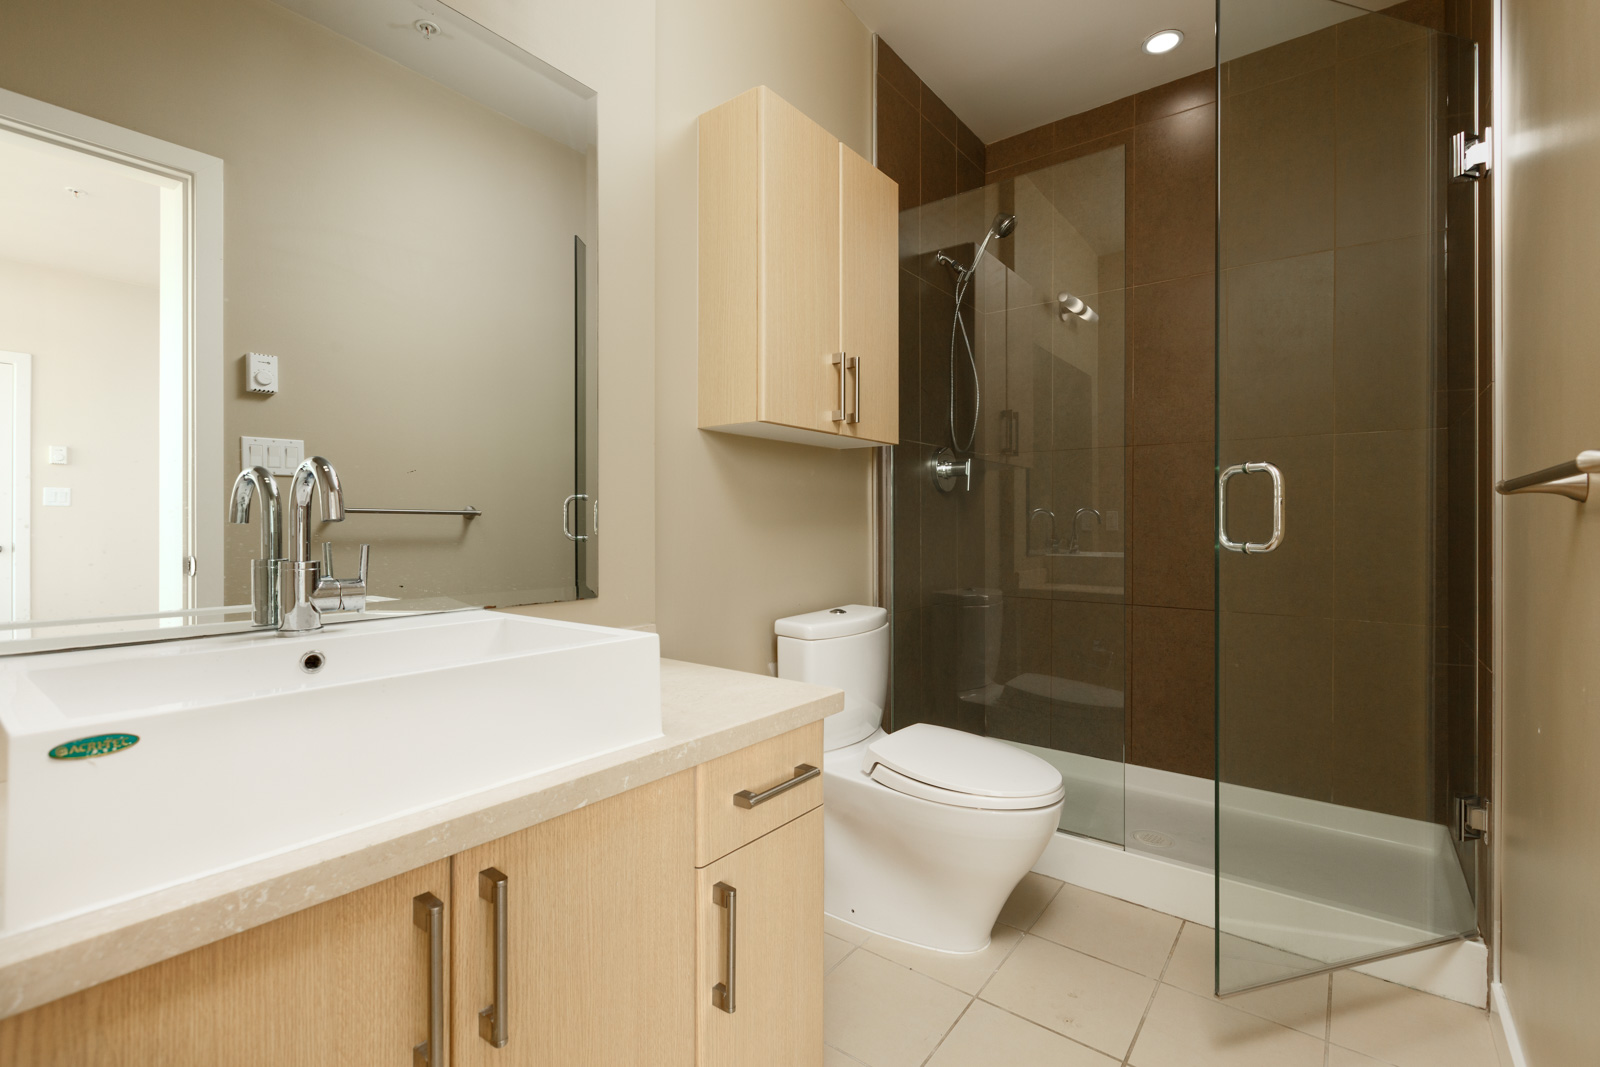 Bathroom with sand coloured hardwood cabinetry and white counter tops inside Vancouver luxury rental condo.